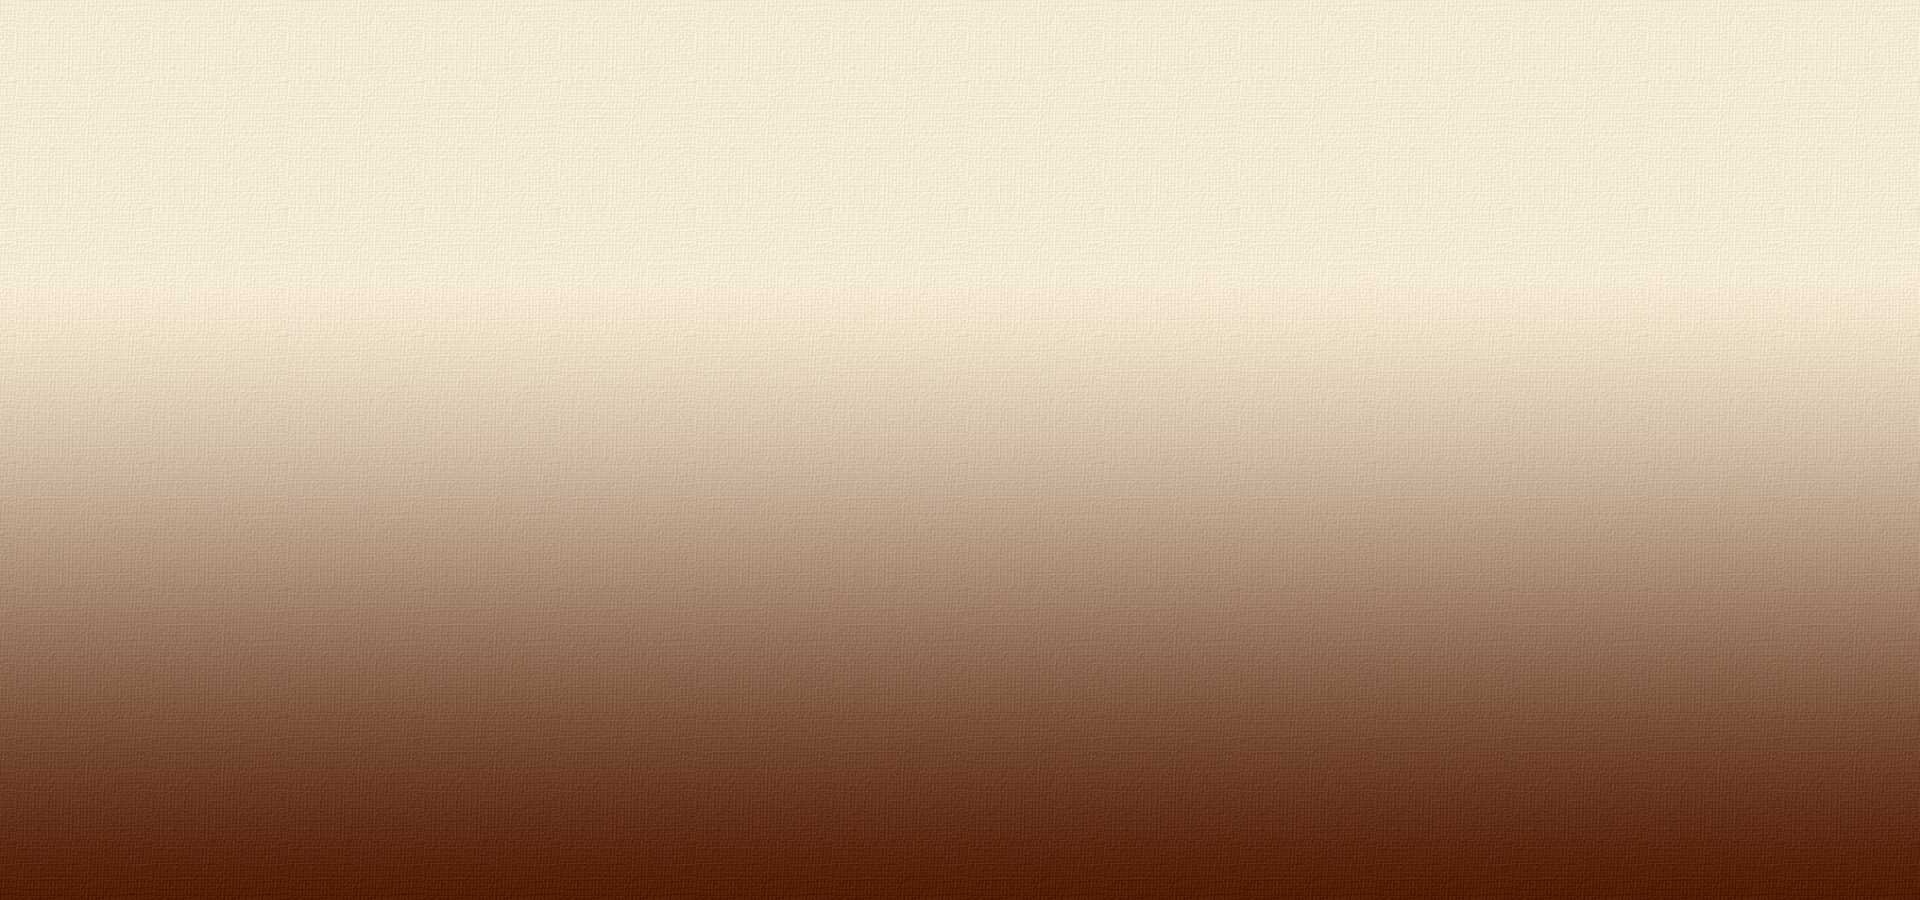 gradient background composed of brown colors